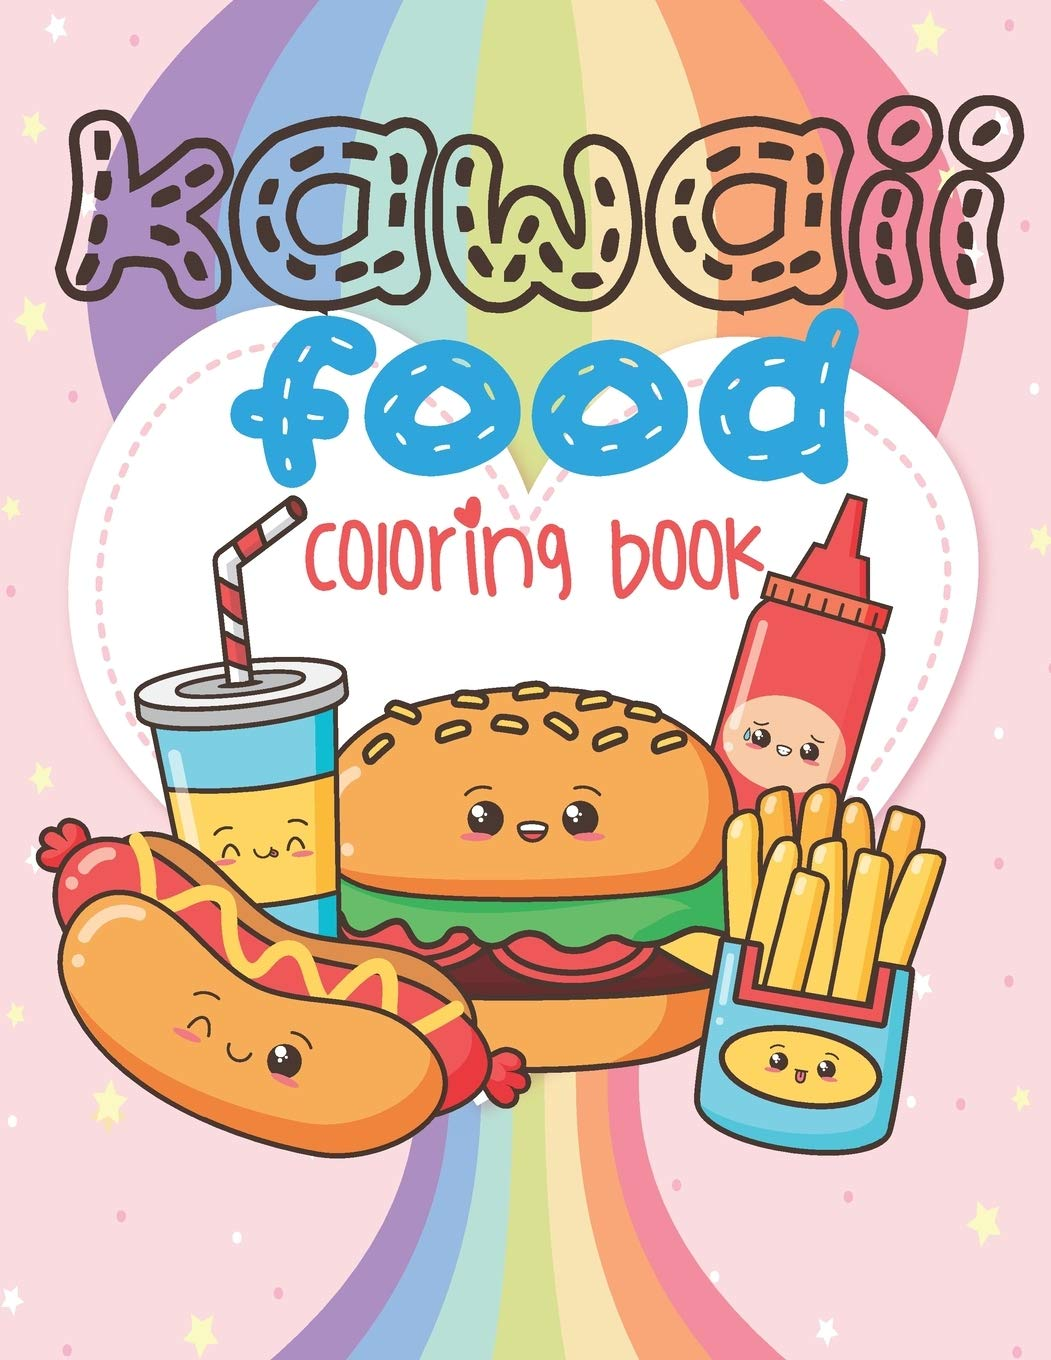 Amazon Com Kawaii Food Coloring Book Super Cute Food Coloring Book For Adults And Kids Of All Ages 30 Adorable Relaxing Easy Kawaii Food And Drinks Coloring Pages 9798642846308 Coloring Books